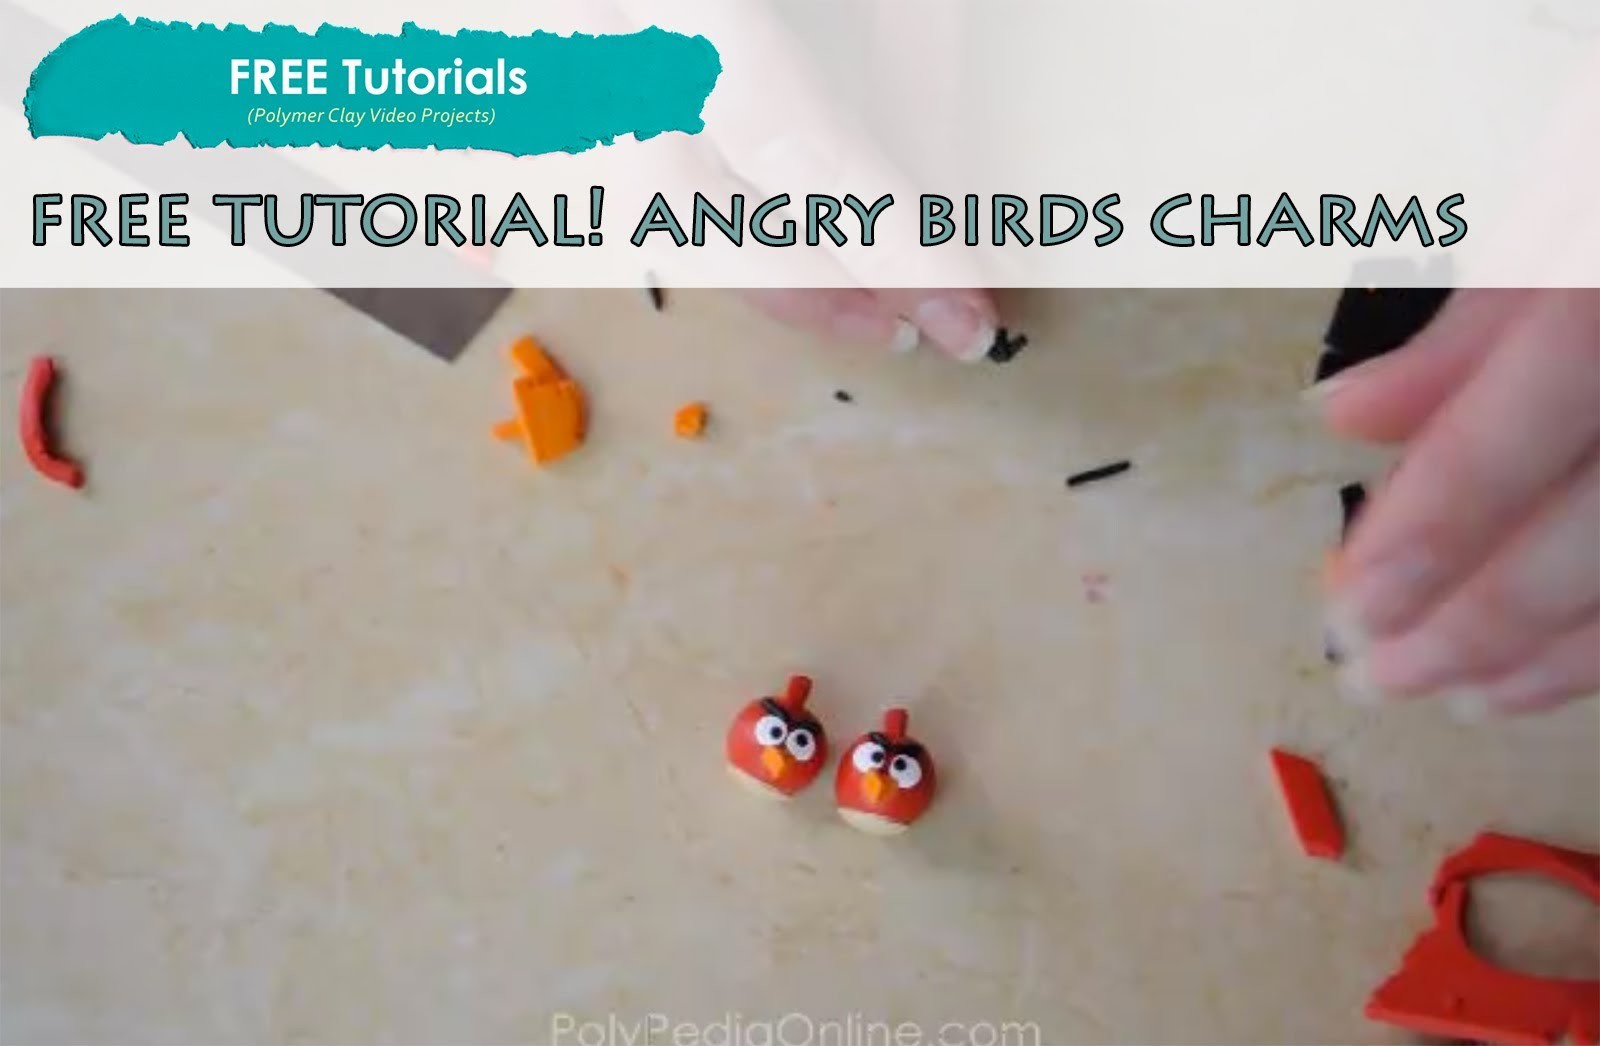 PolyPediaOnlineTV - FREE How To Polymer Clay Angry Birds Figurines